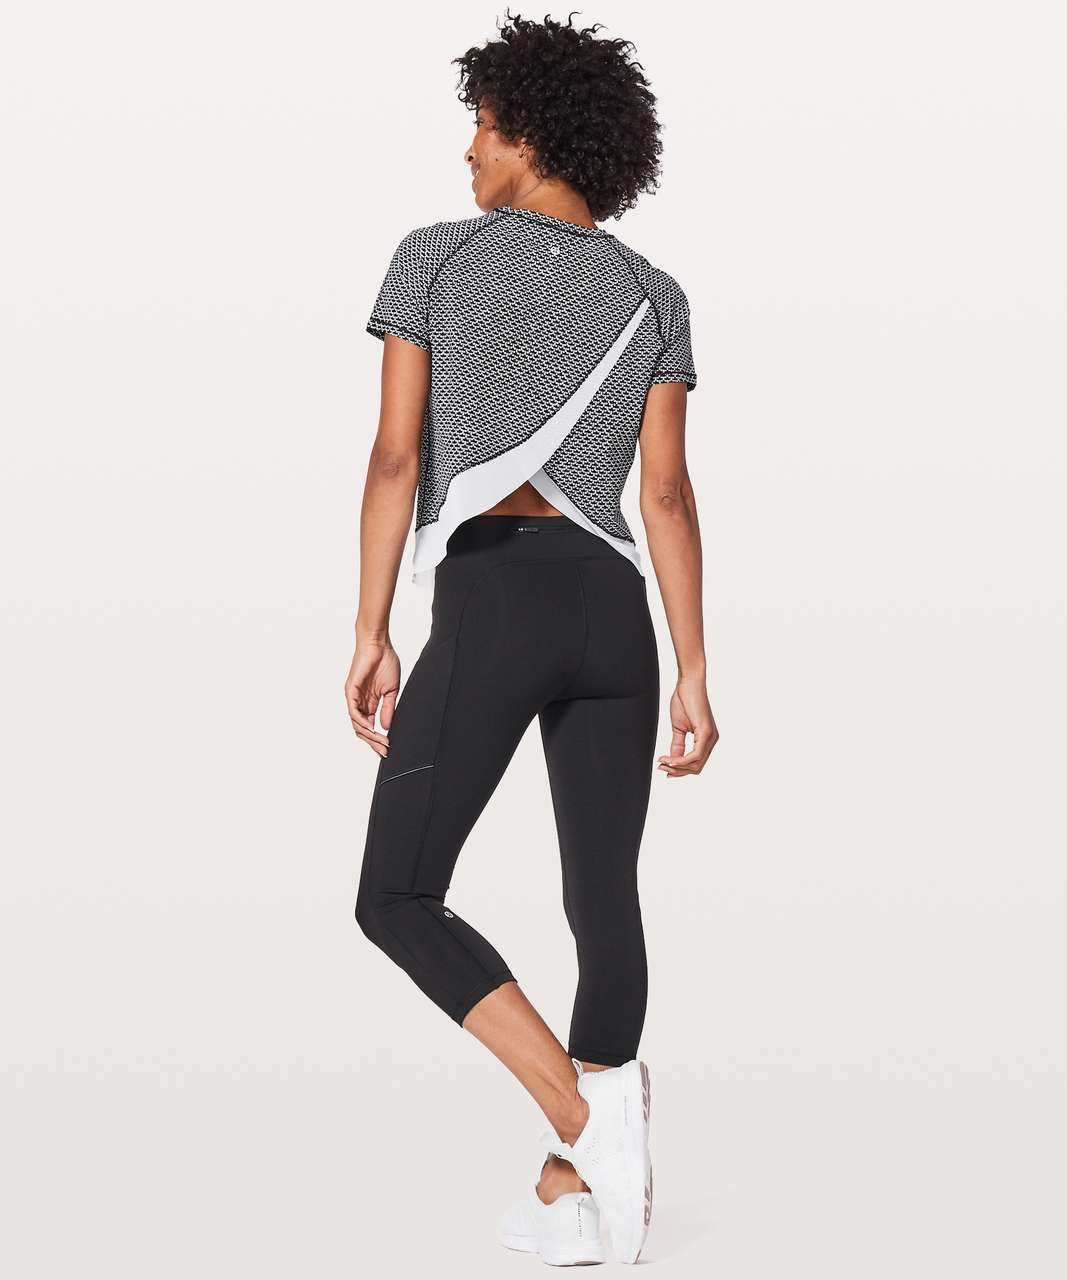 Lululemon Quick Pace Short Sleeve - Monochromic Black / White